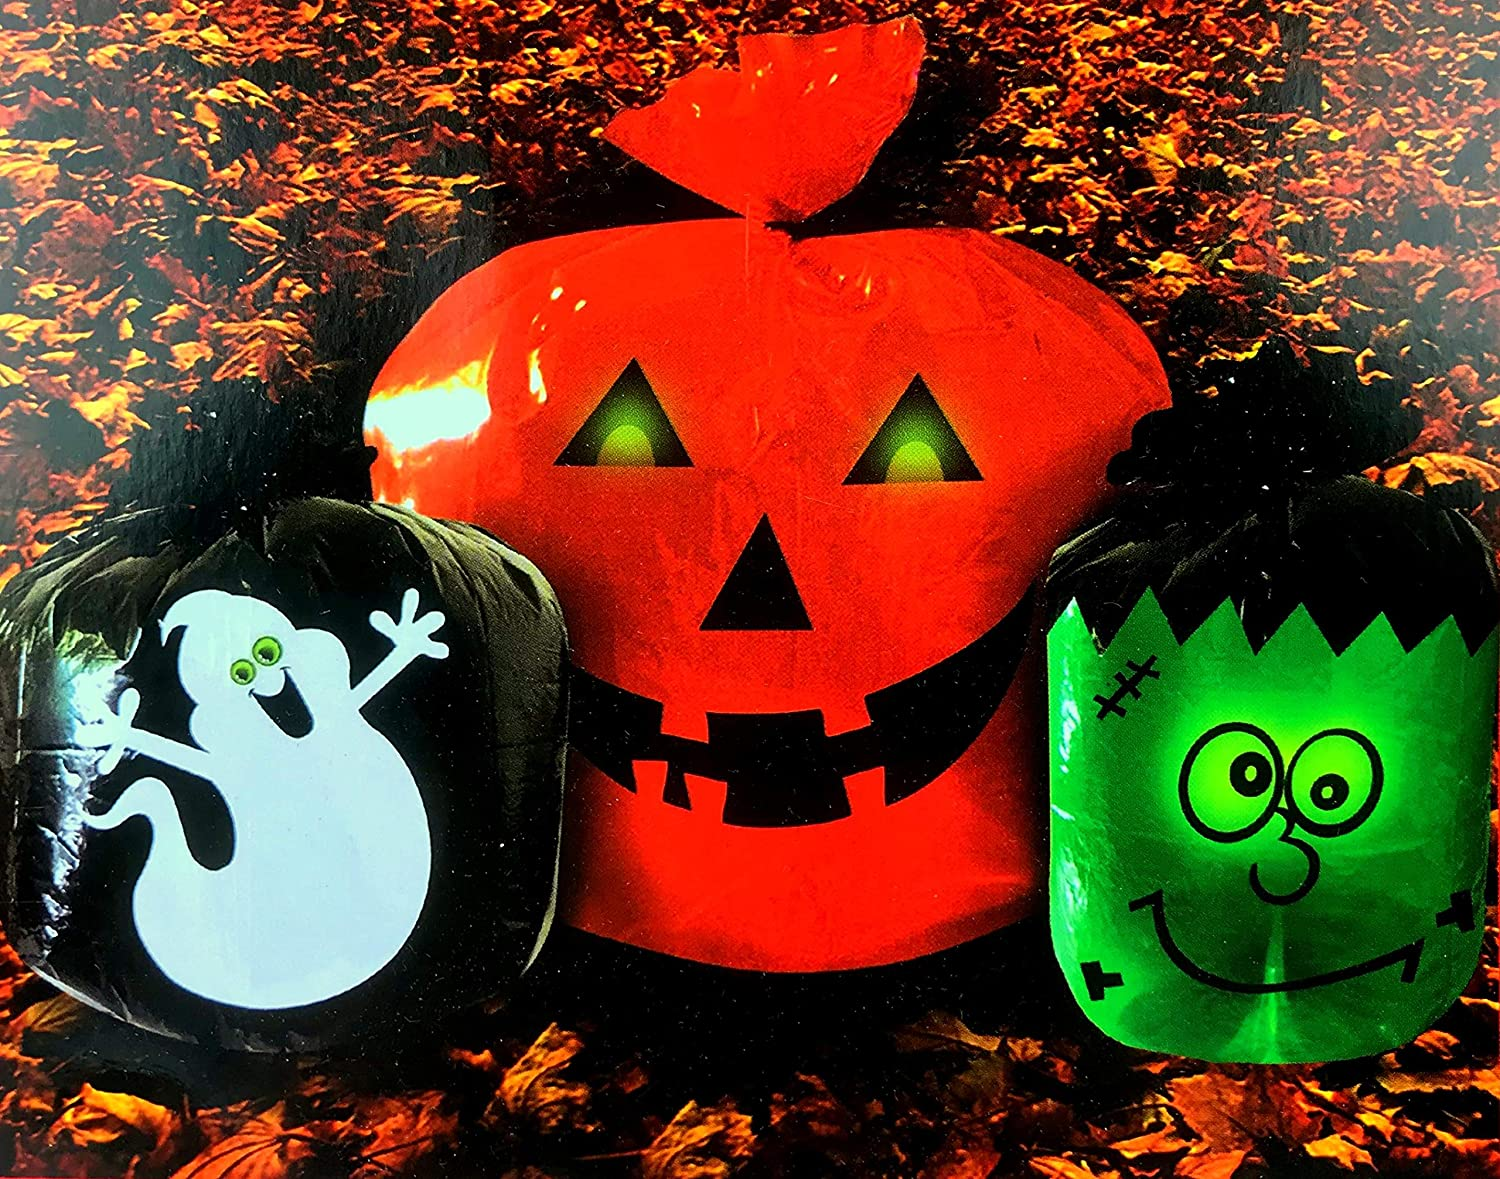 Halloween Glow in the Dark Lawn Leaf Bags - Outdoor Fall Yard Decoration - Pumpkin Jack O Lantern Ghost Monster - Pack of 3